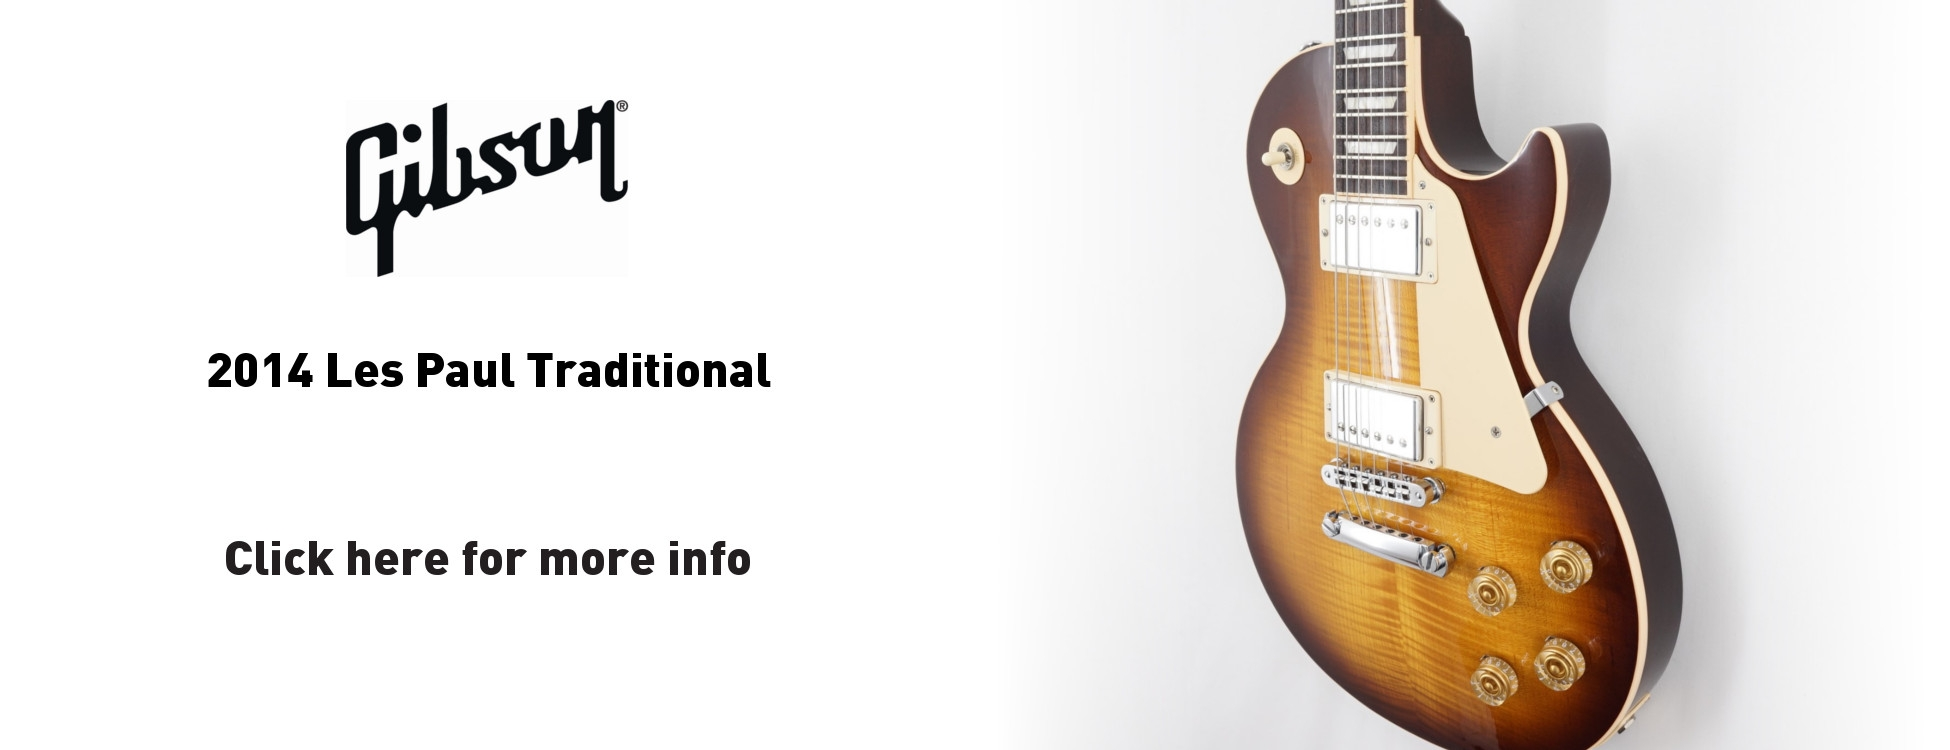 Gibson 2014 Les Paul Traditional Second Hand